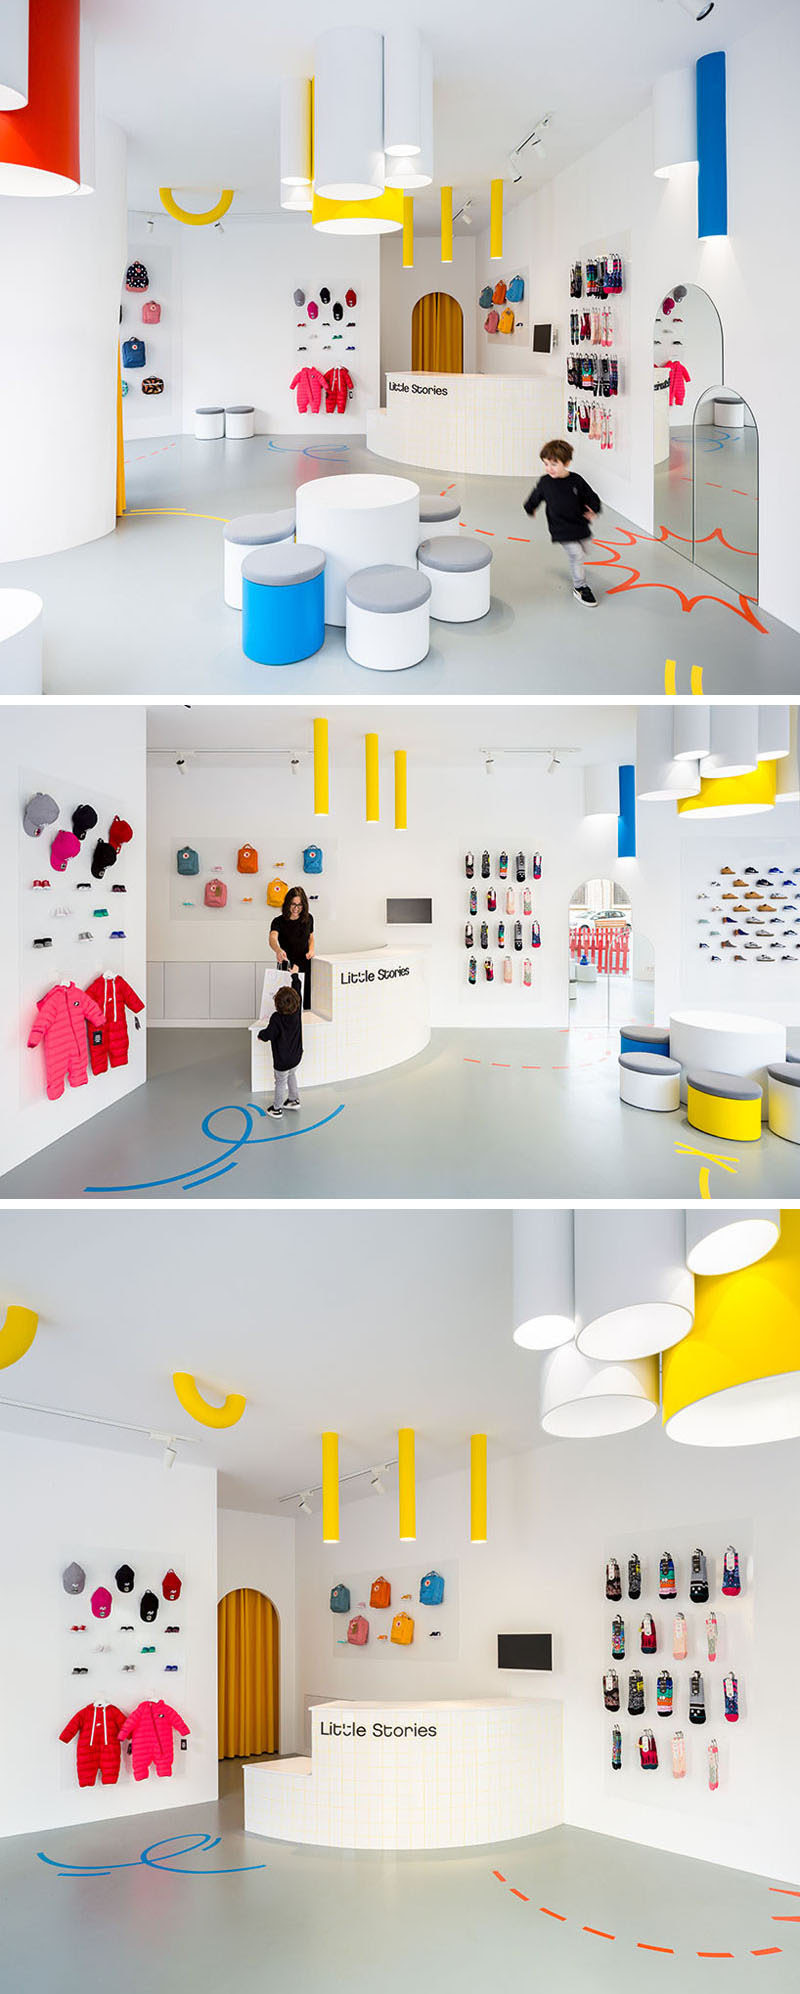 In this modern retail store, a curved sales counter complements the curved shapes of the lighting and display units, while the colorful clothing, shoes and accessories 'pop' against the white background, drawing the eye of potential customers. #ModernRetailStore #WhiteRetailStore